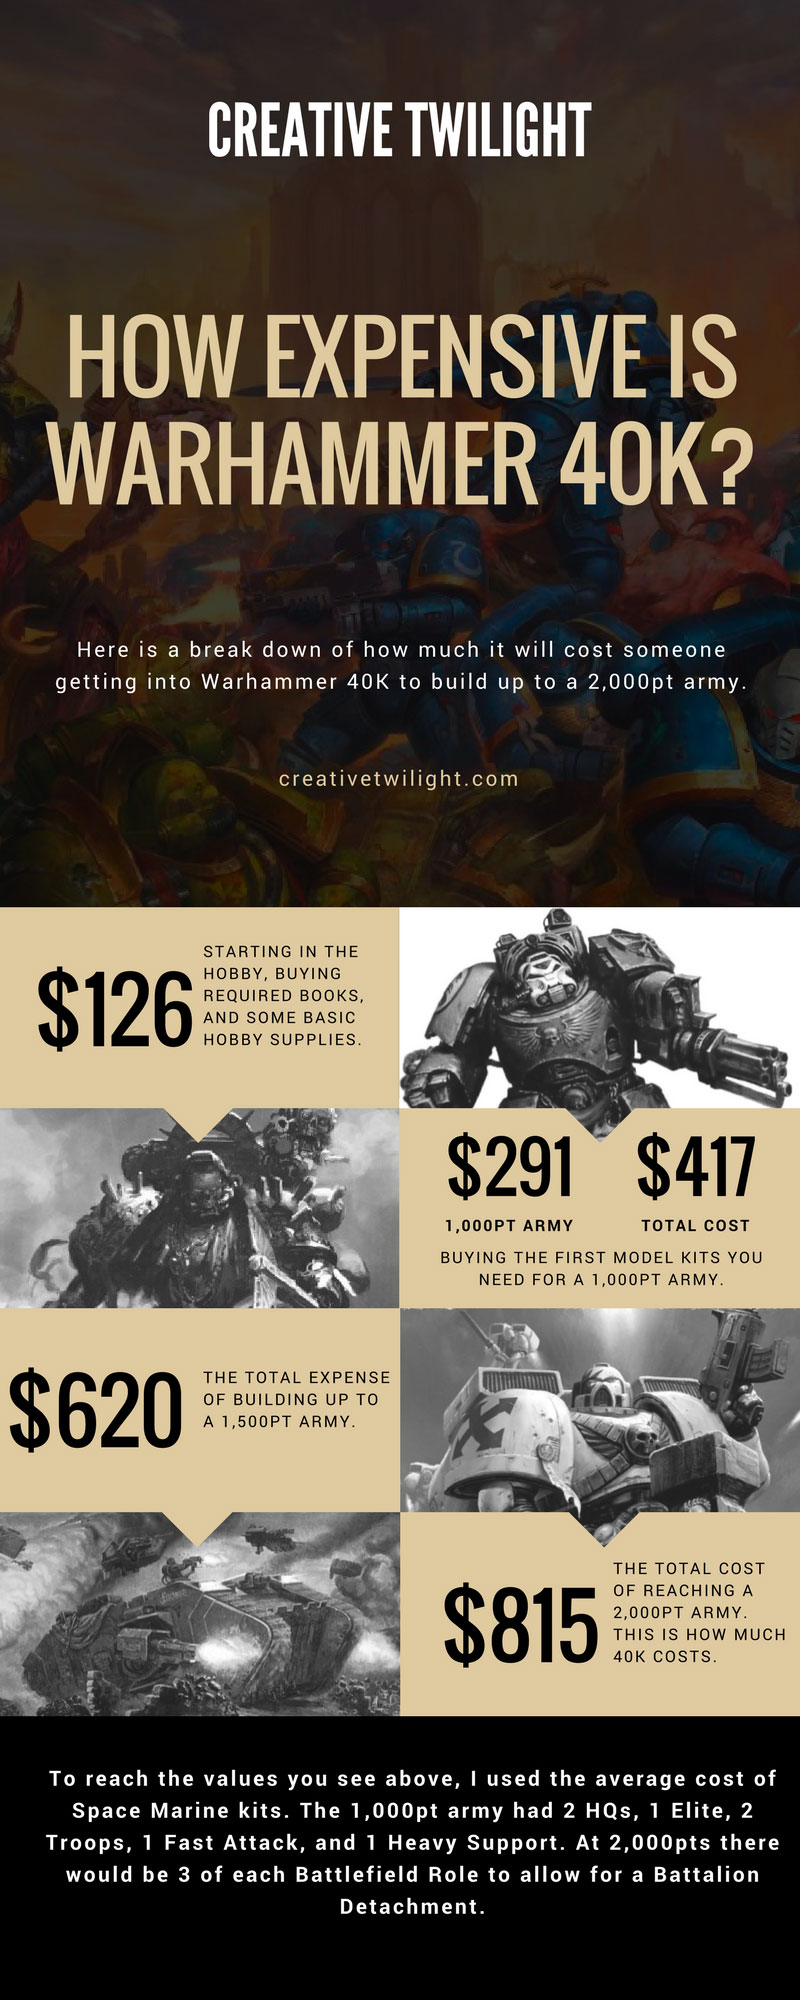 The Cost of Warhammer 40K